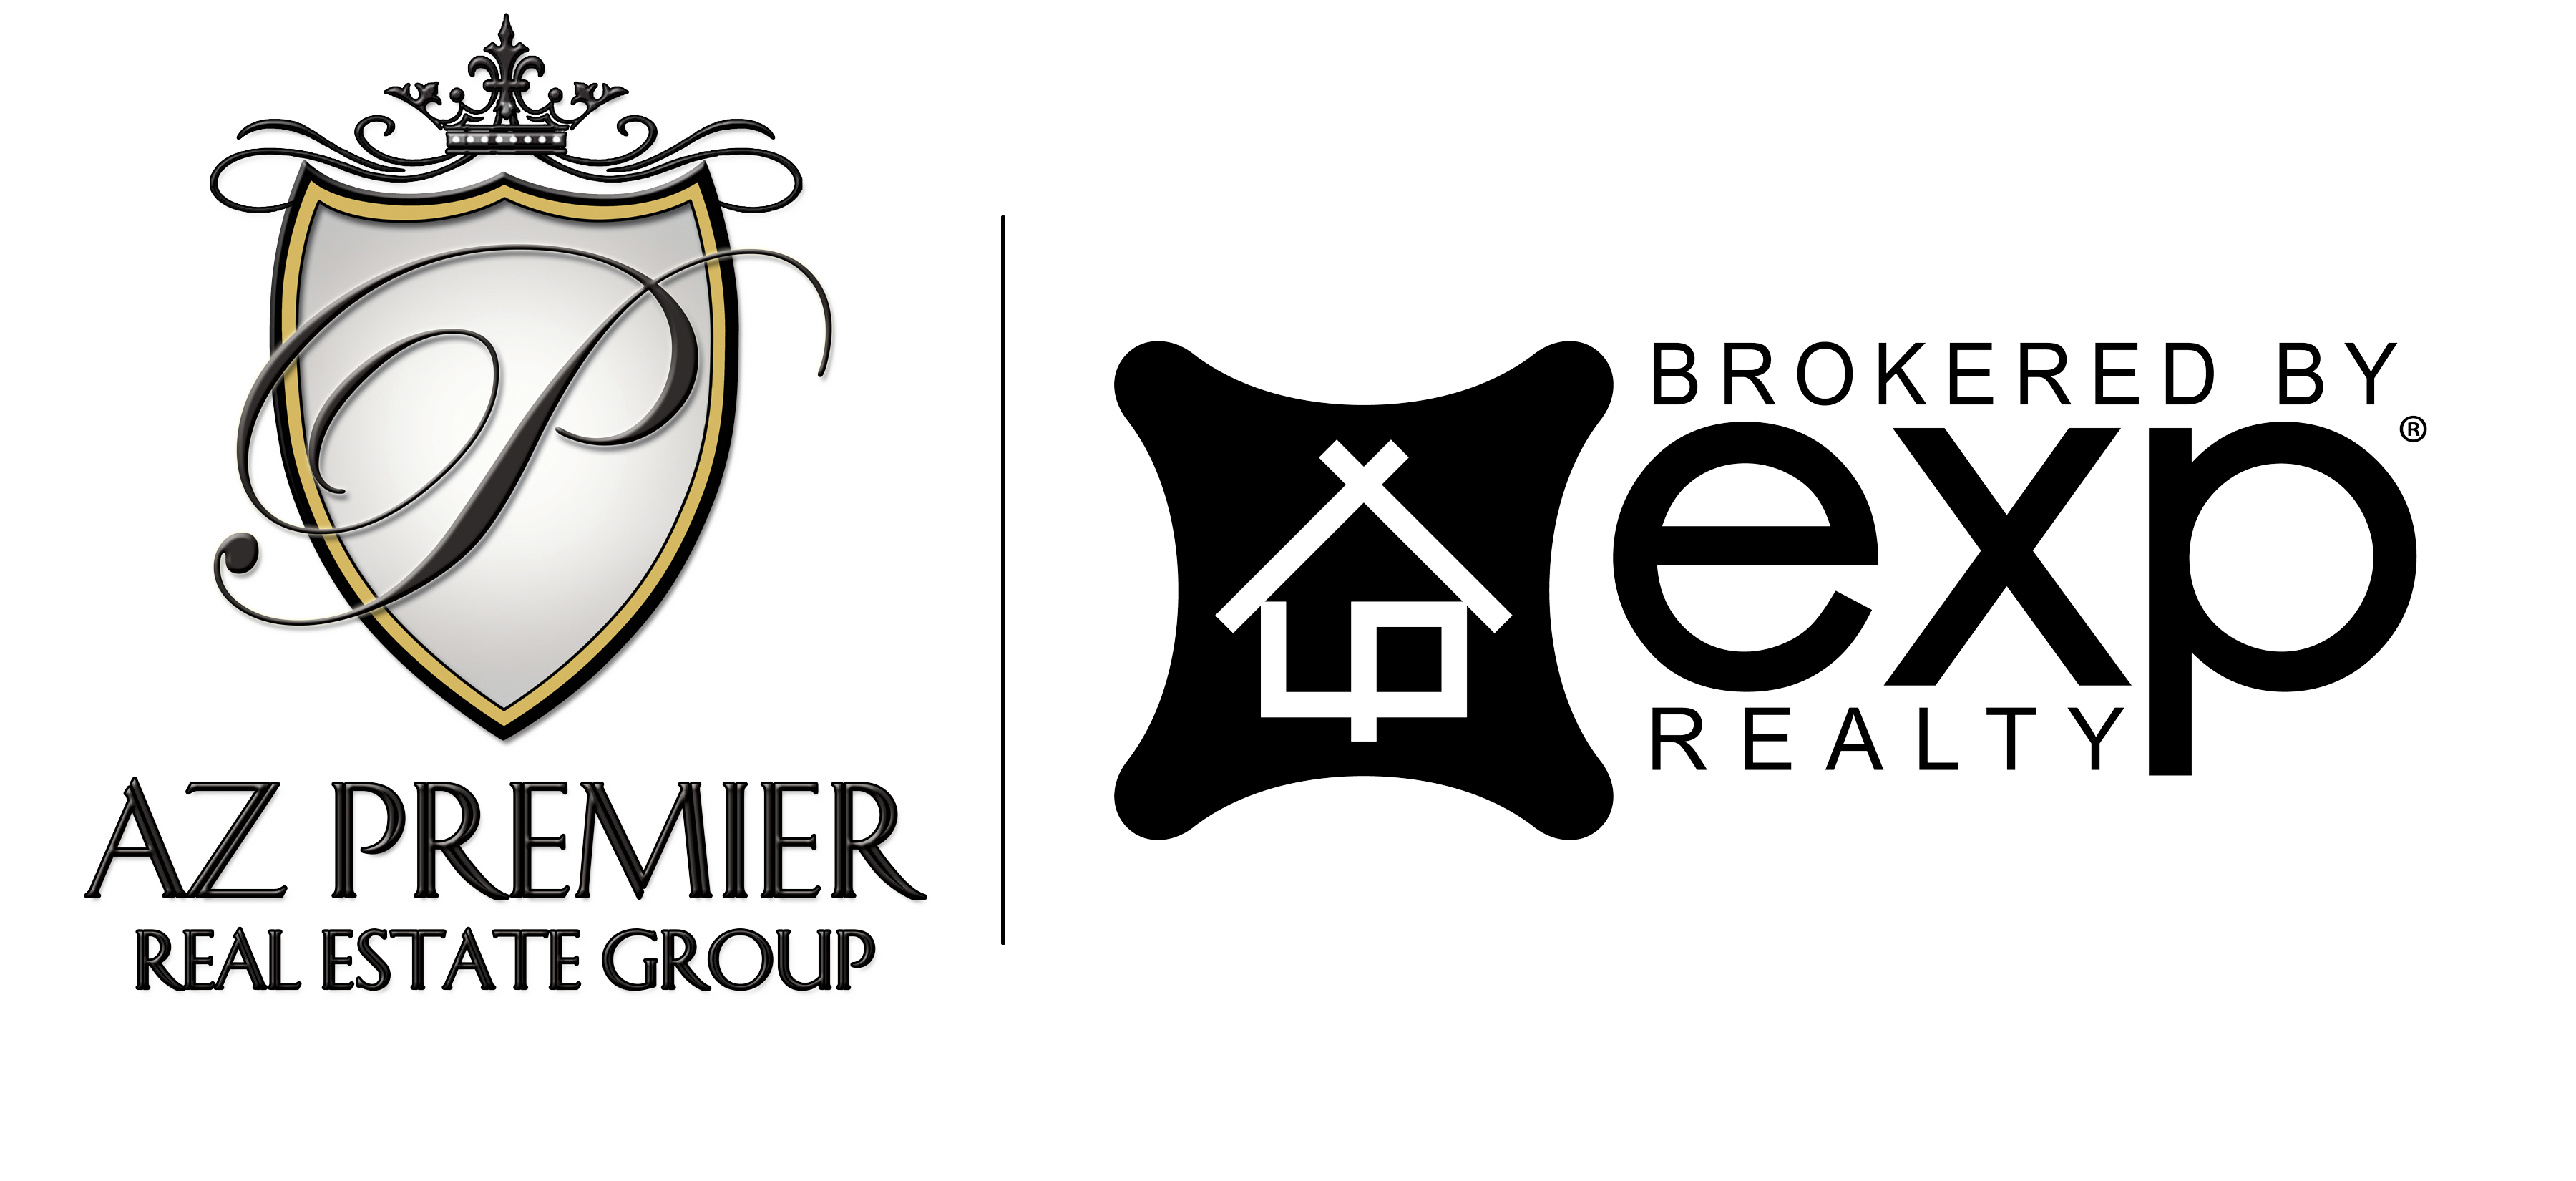 AZ Premier Real Estate Group logo